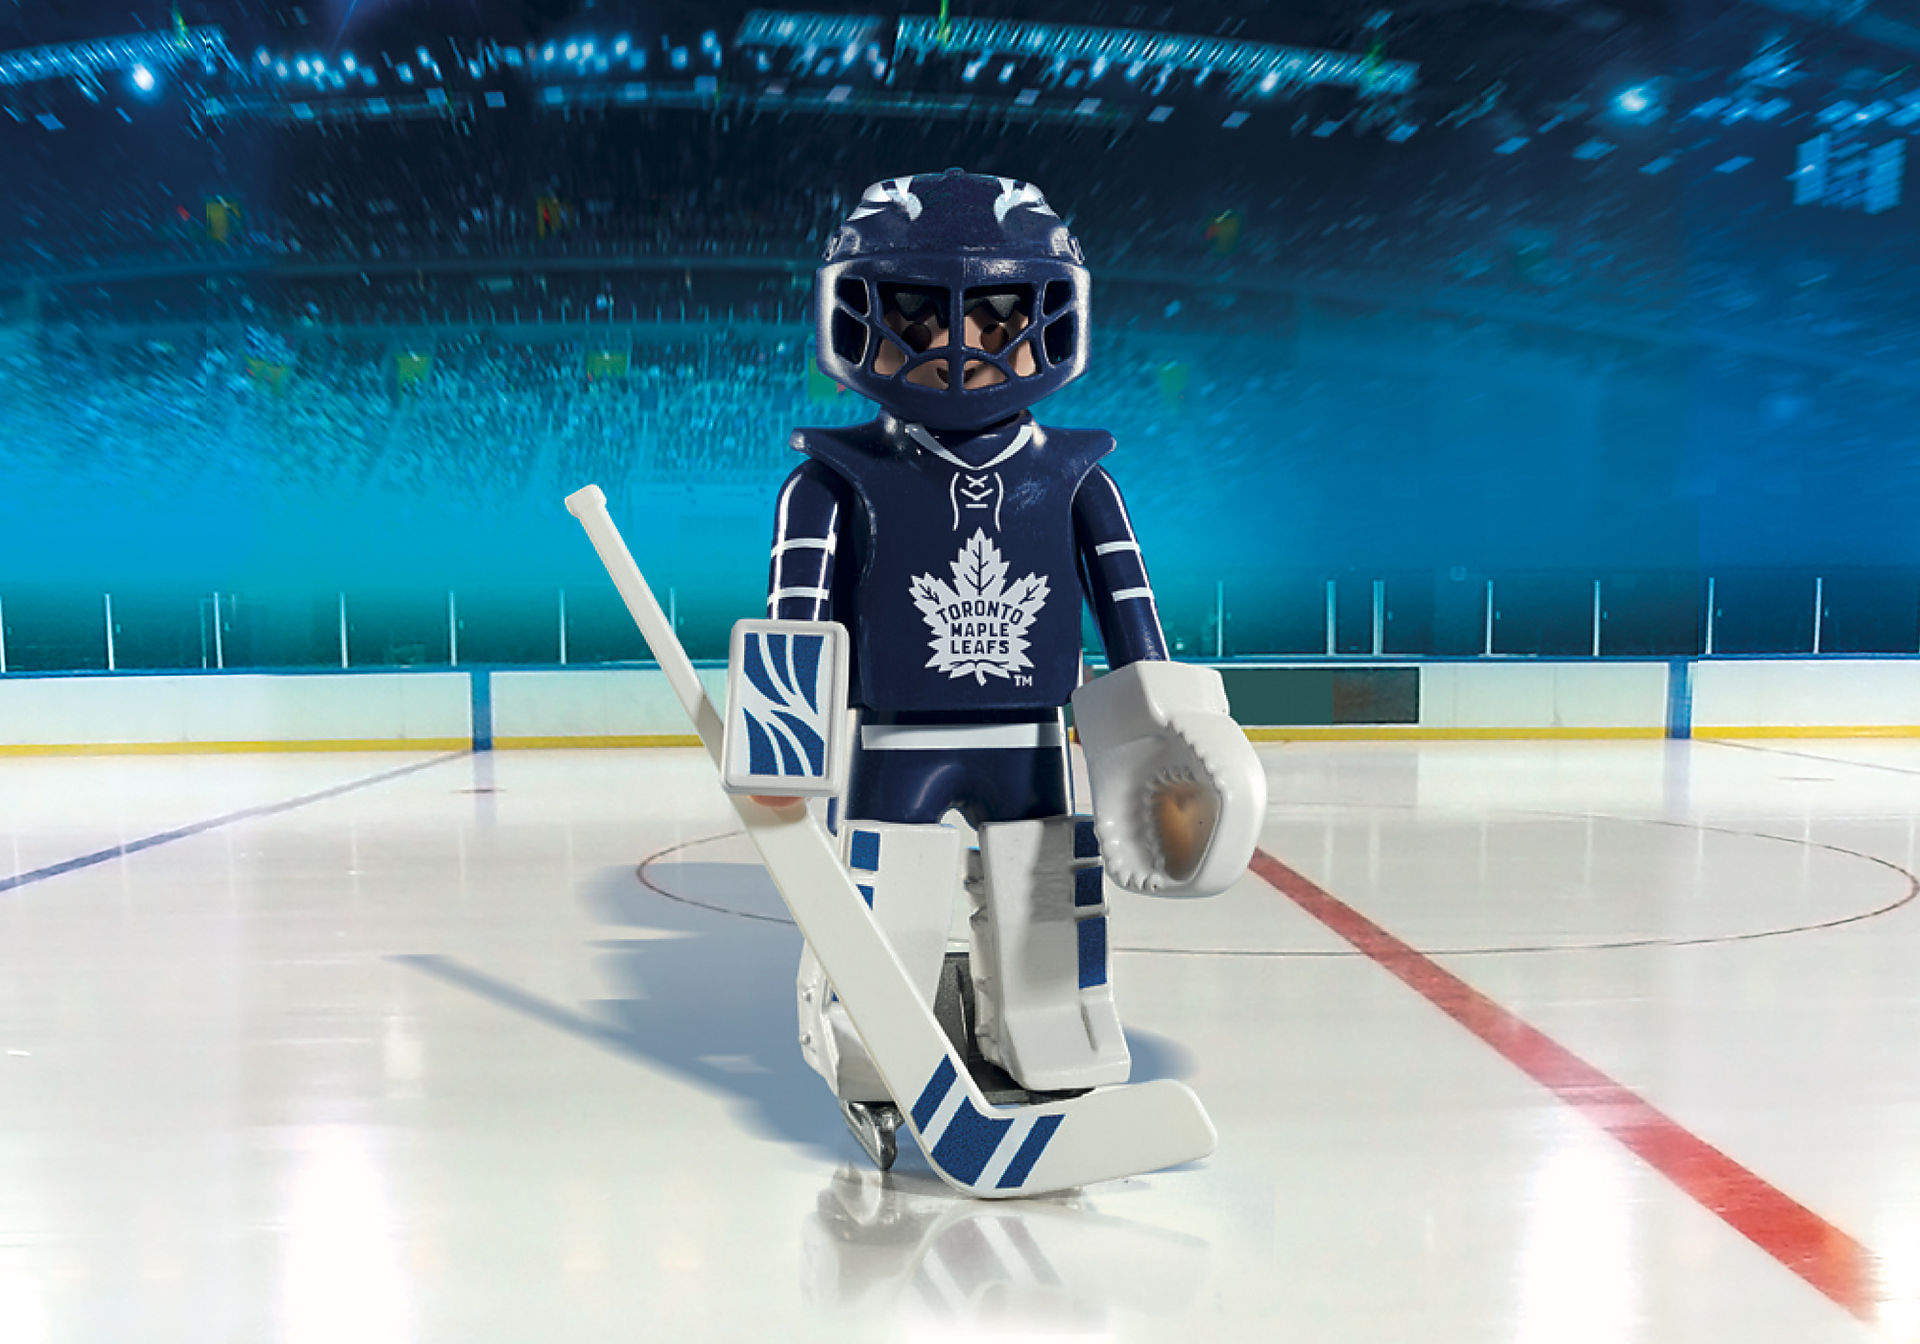 5083 NHL® Toronto Maple Leafs® Goalie zoom image1